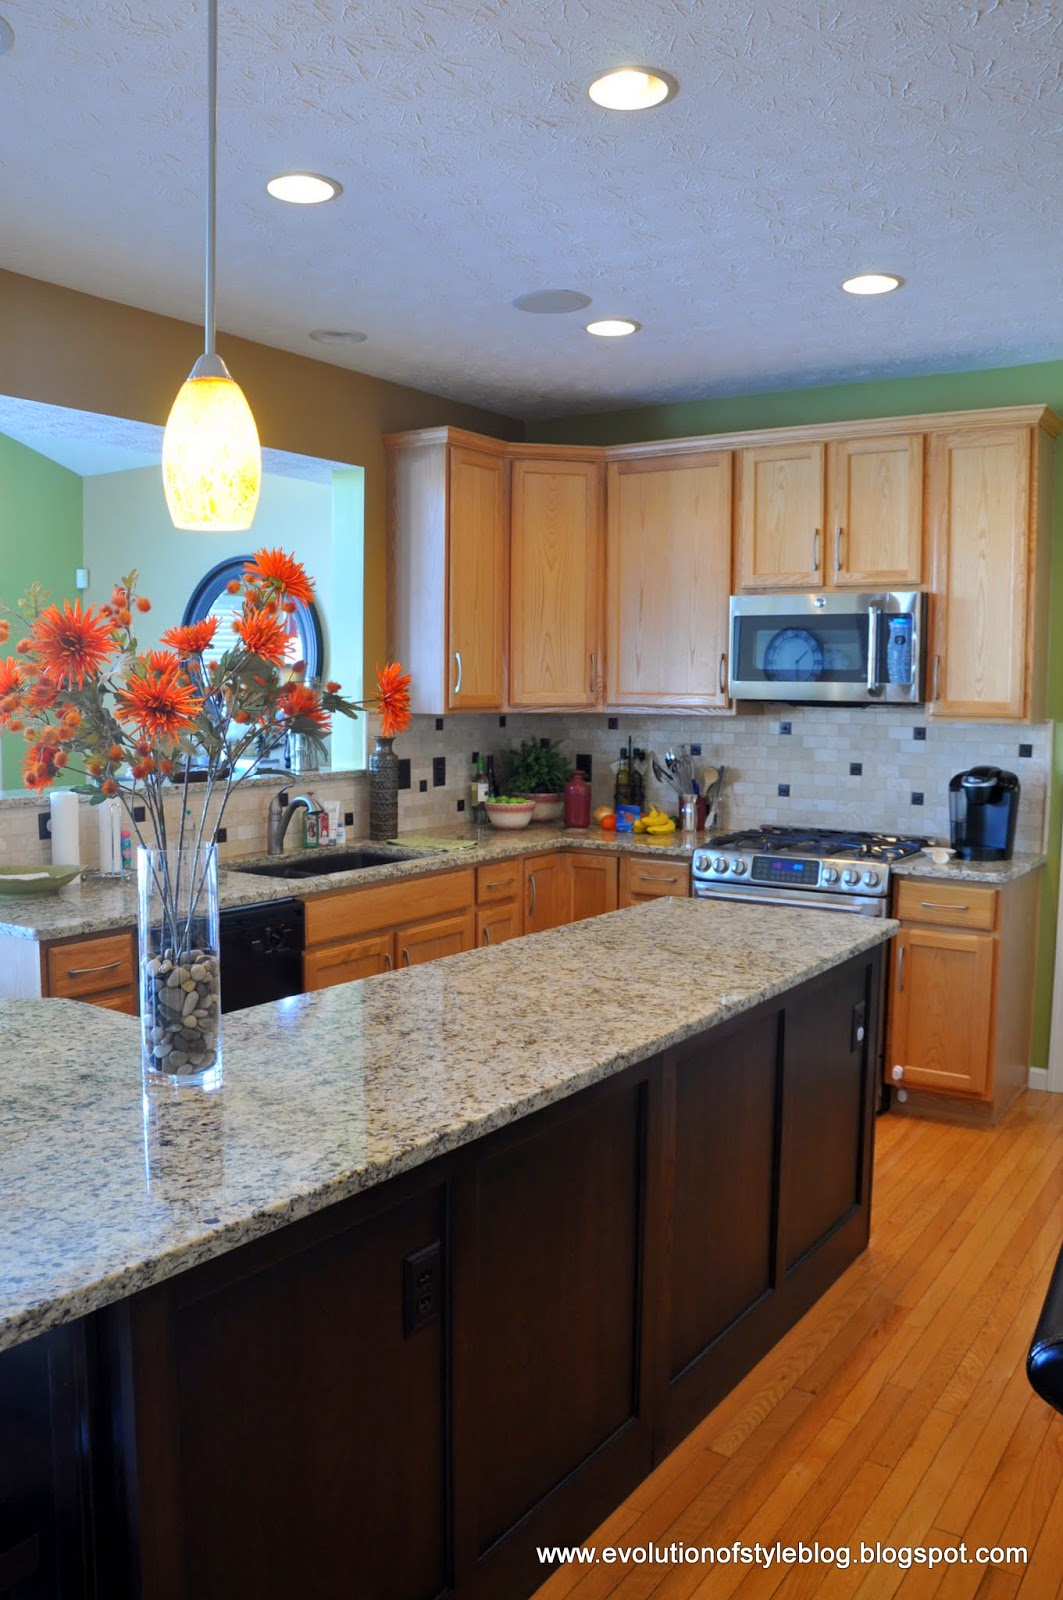 Another Builder Grade Kitchen Transformed Evolution Of Style